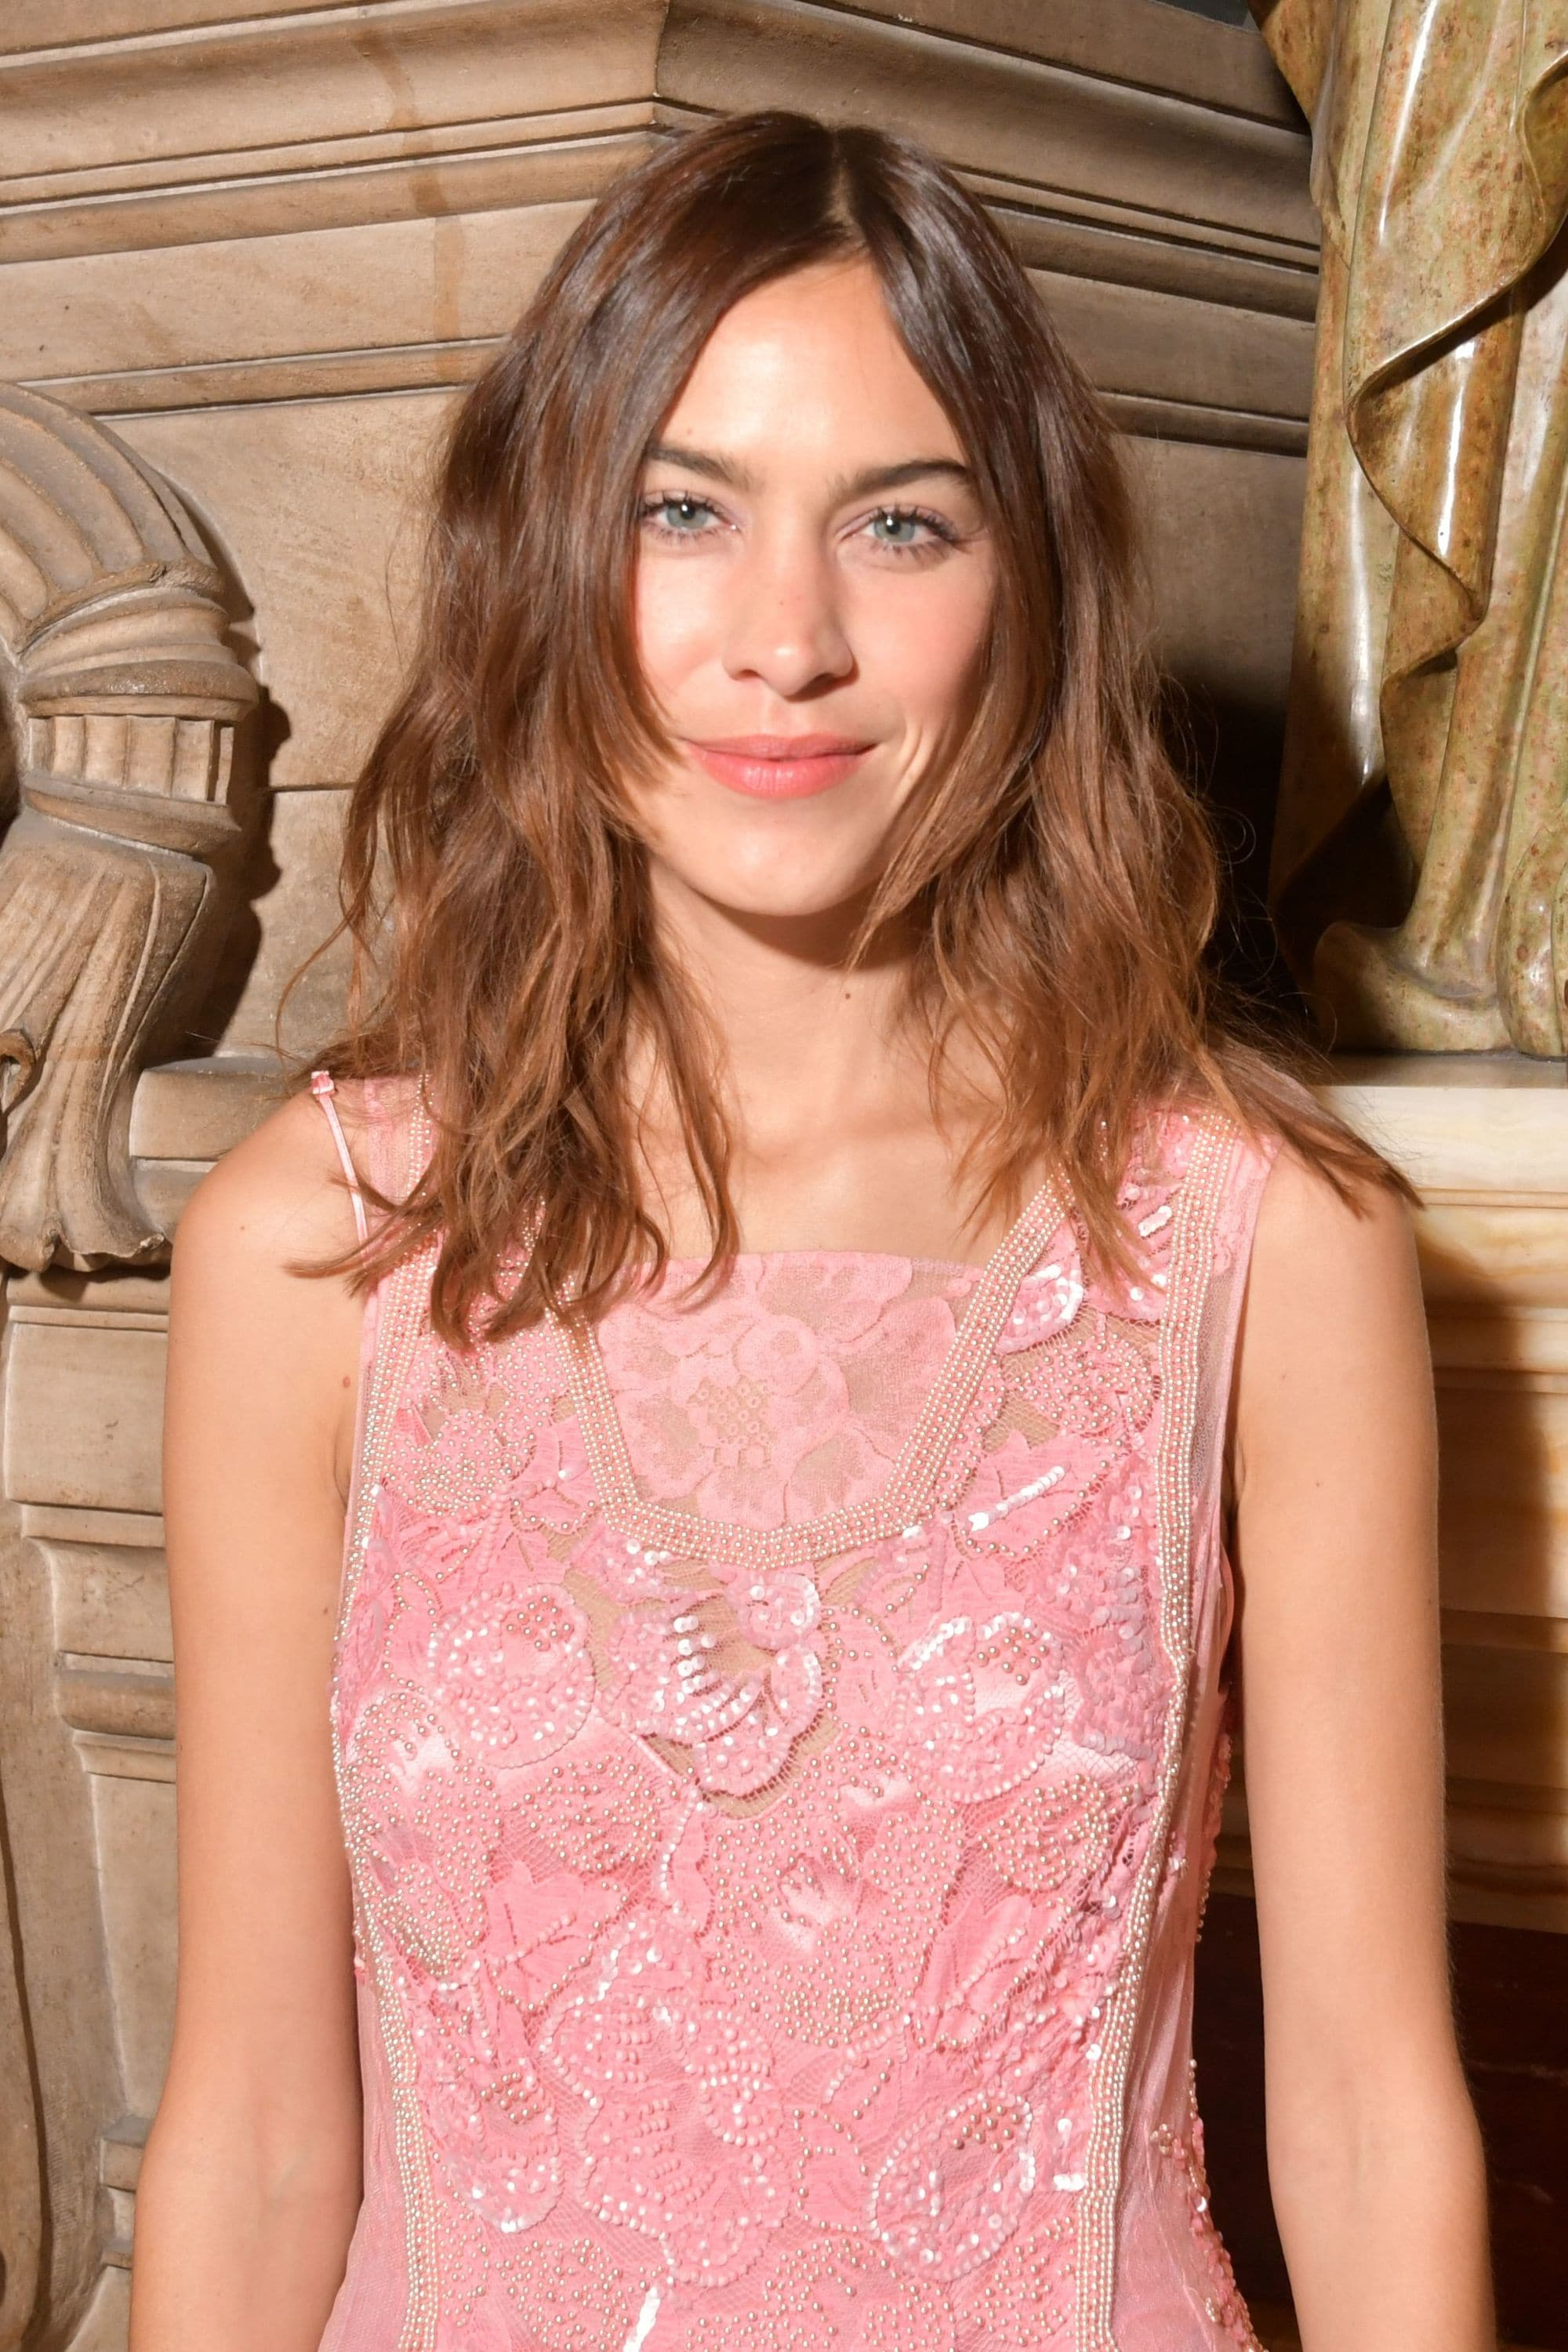 Medium hairstyles for thick hair: Alexa Chung with shaggy brunette hair with short face-framing layers